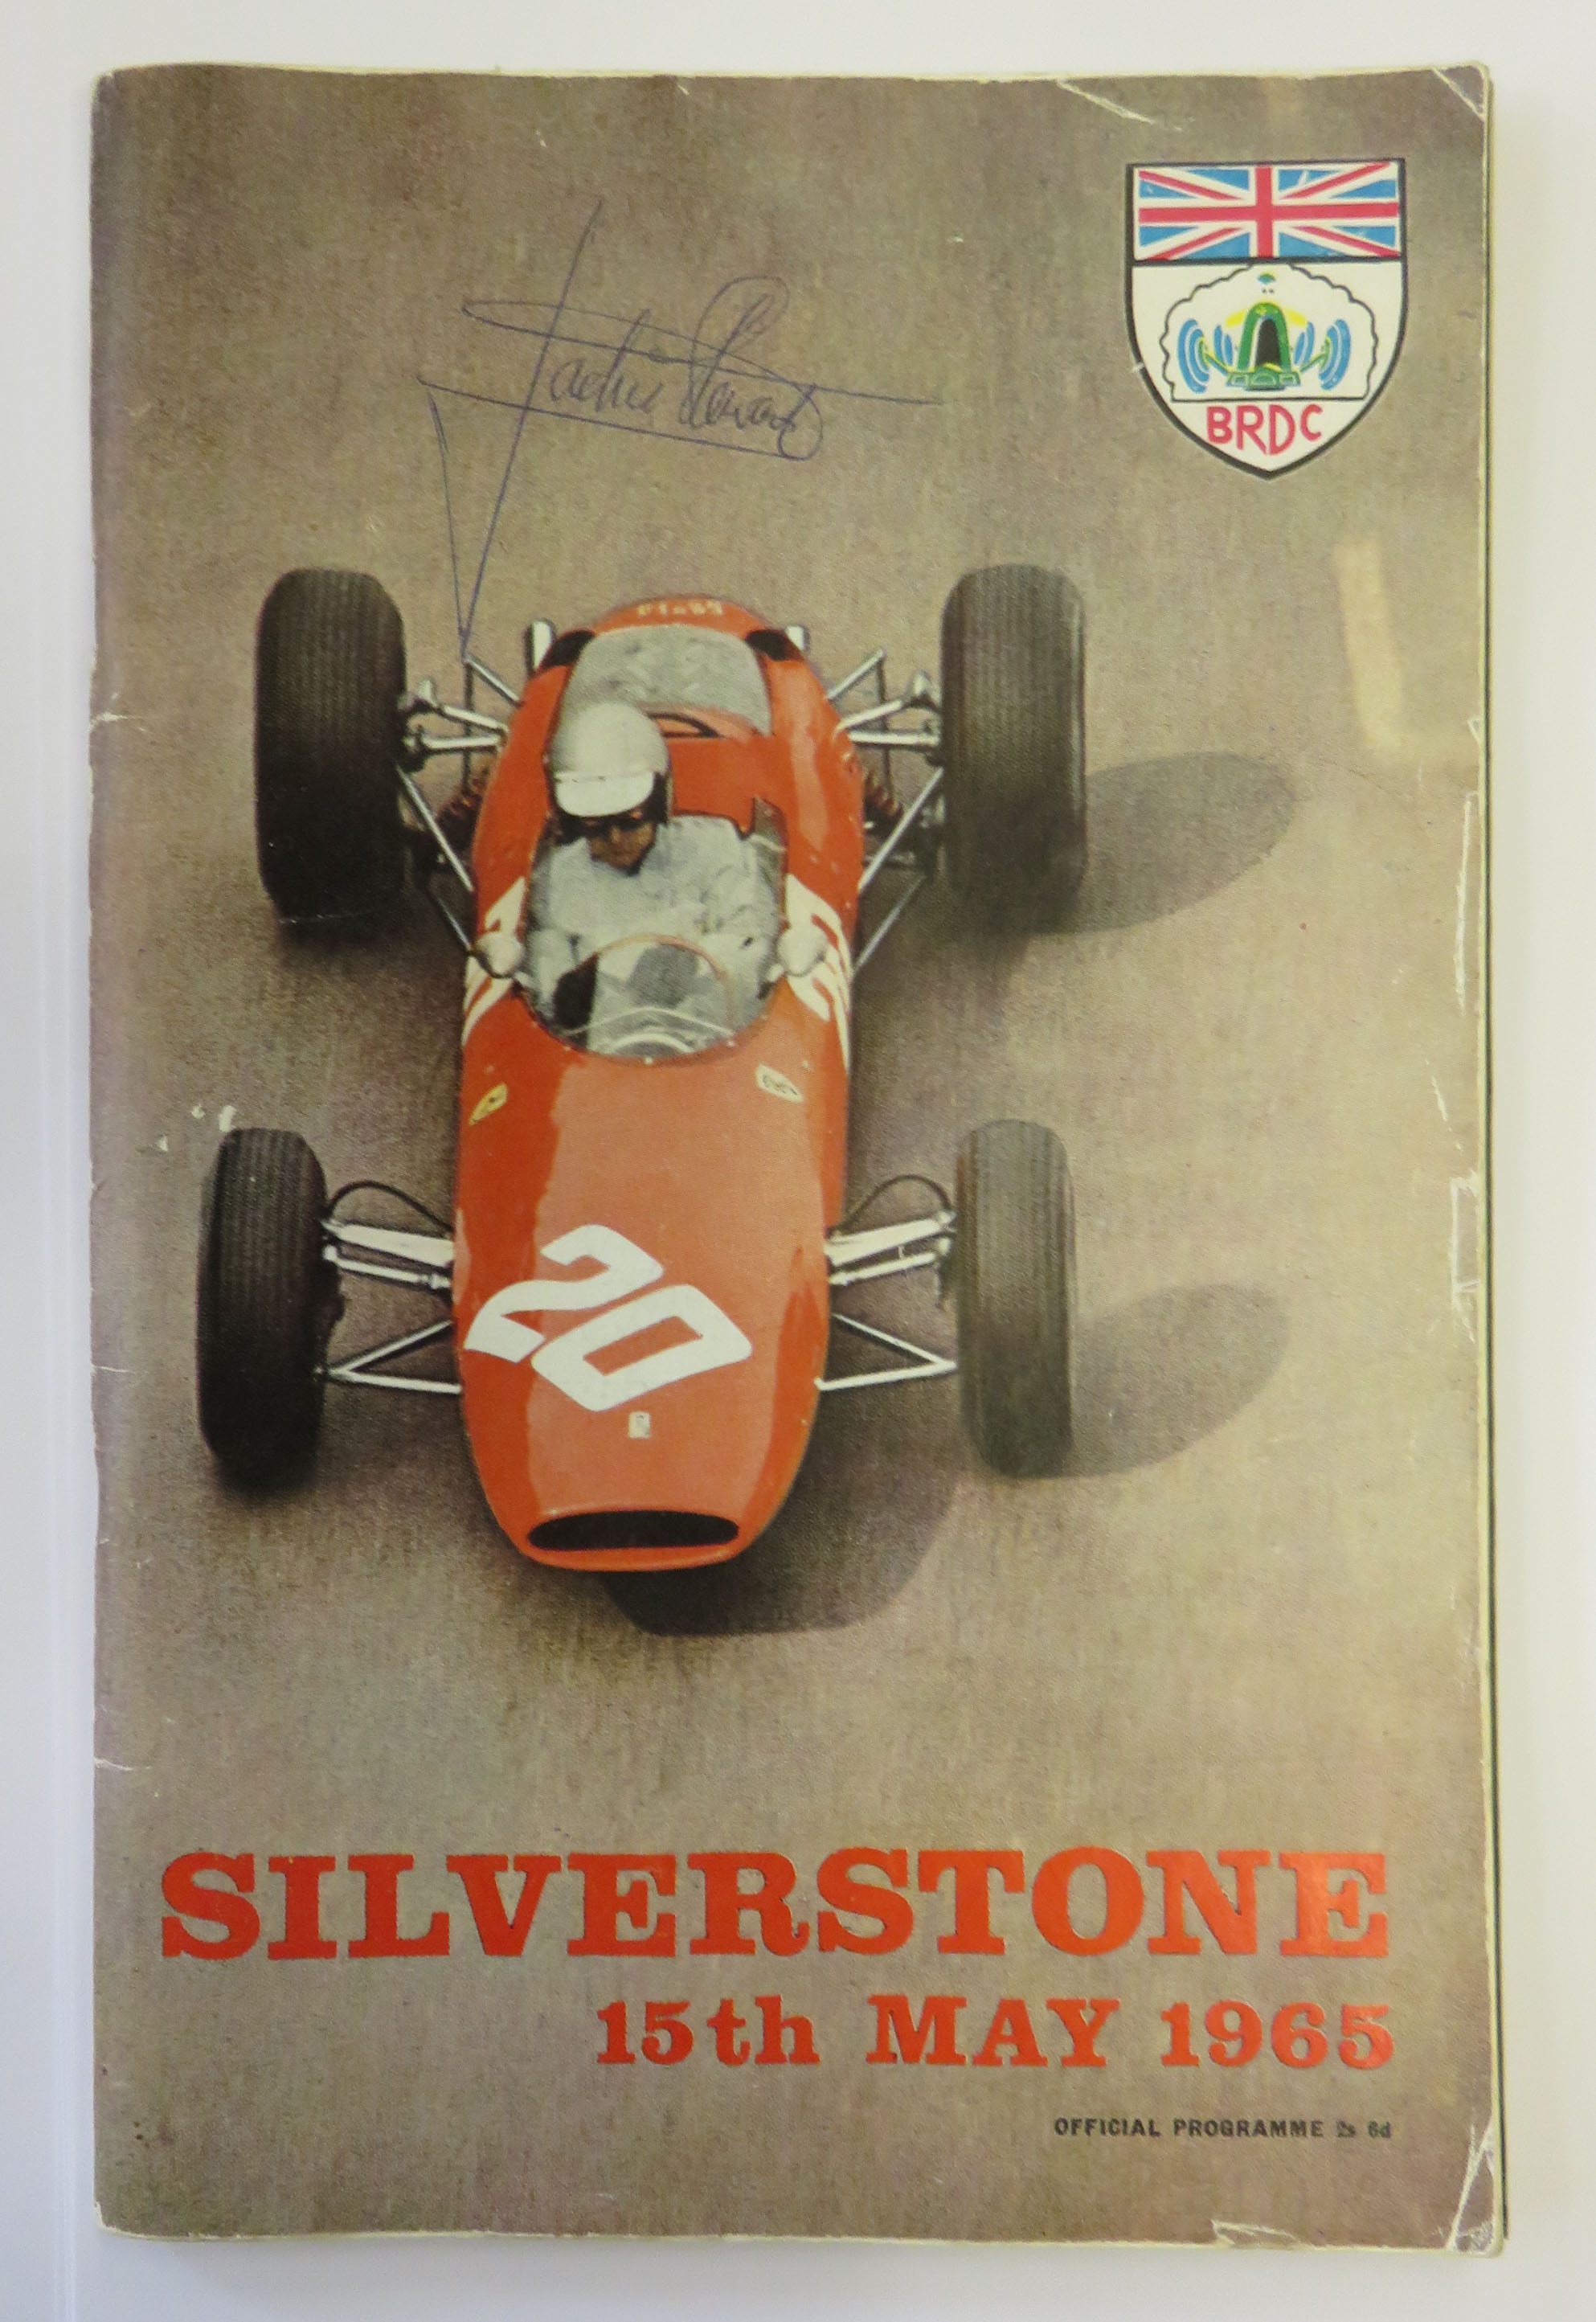 Silverstone Official Programme 15th May 1965